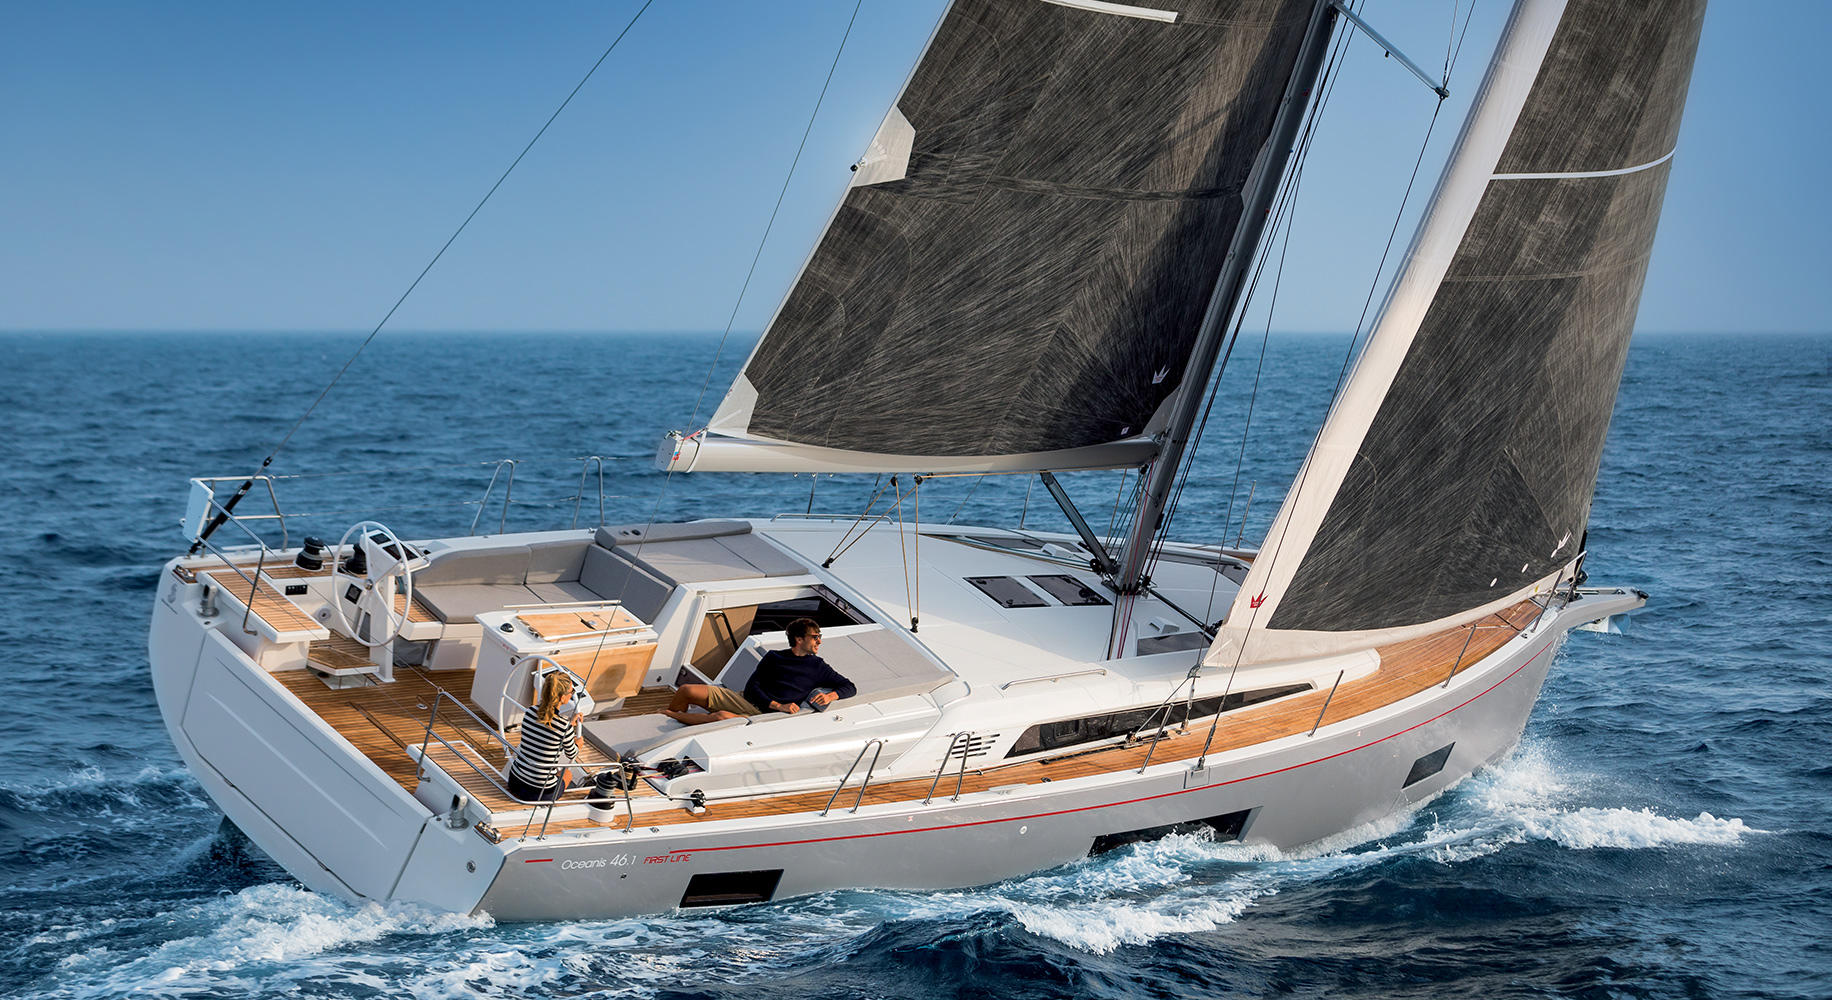 Oceanis 46.1 Prestige (5Cab) - Sailing Yacht for Charter in Greece